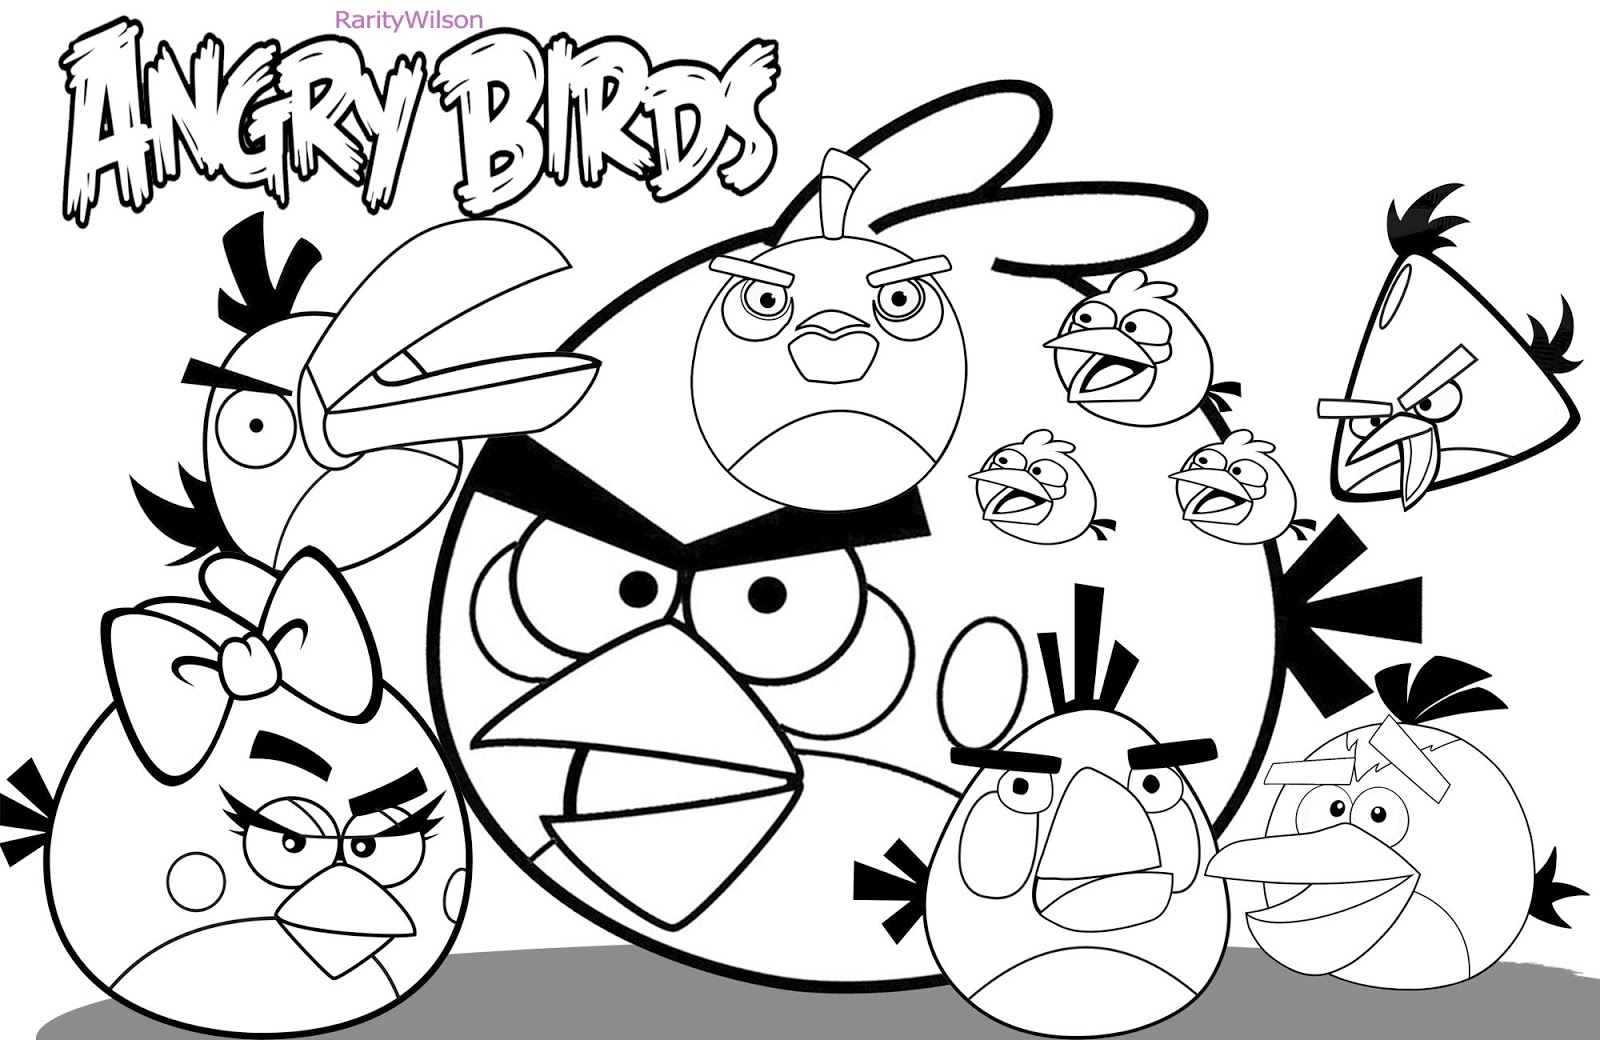 Personalized Party Invites News Angry Birds Free Printable Colouring Pages